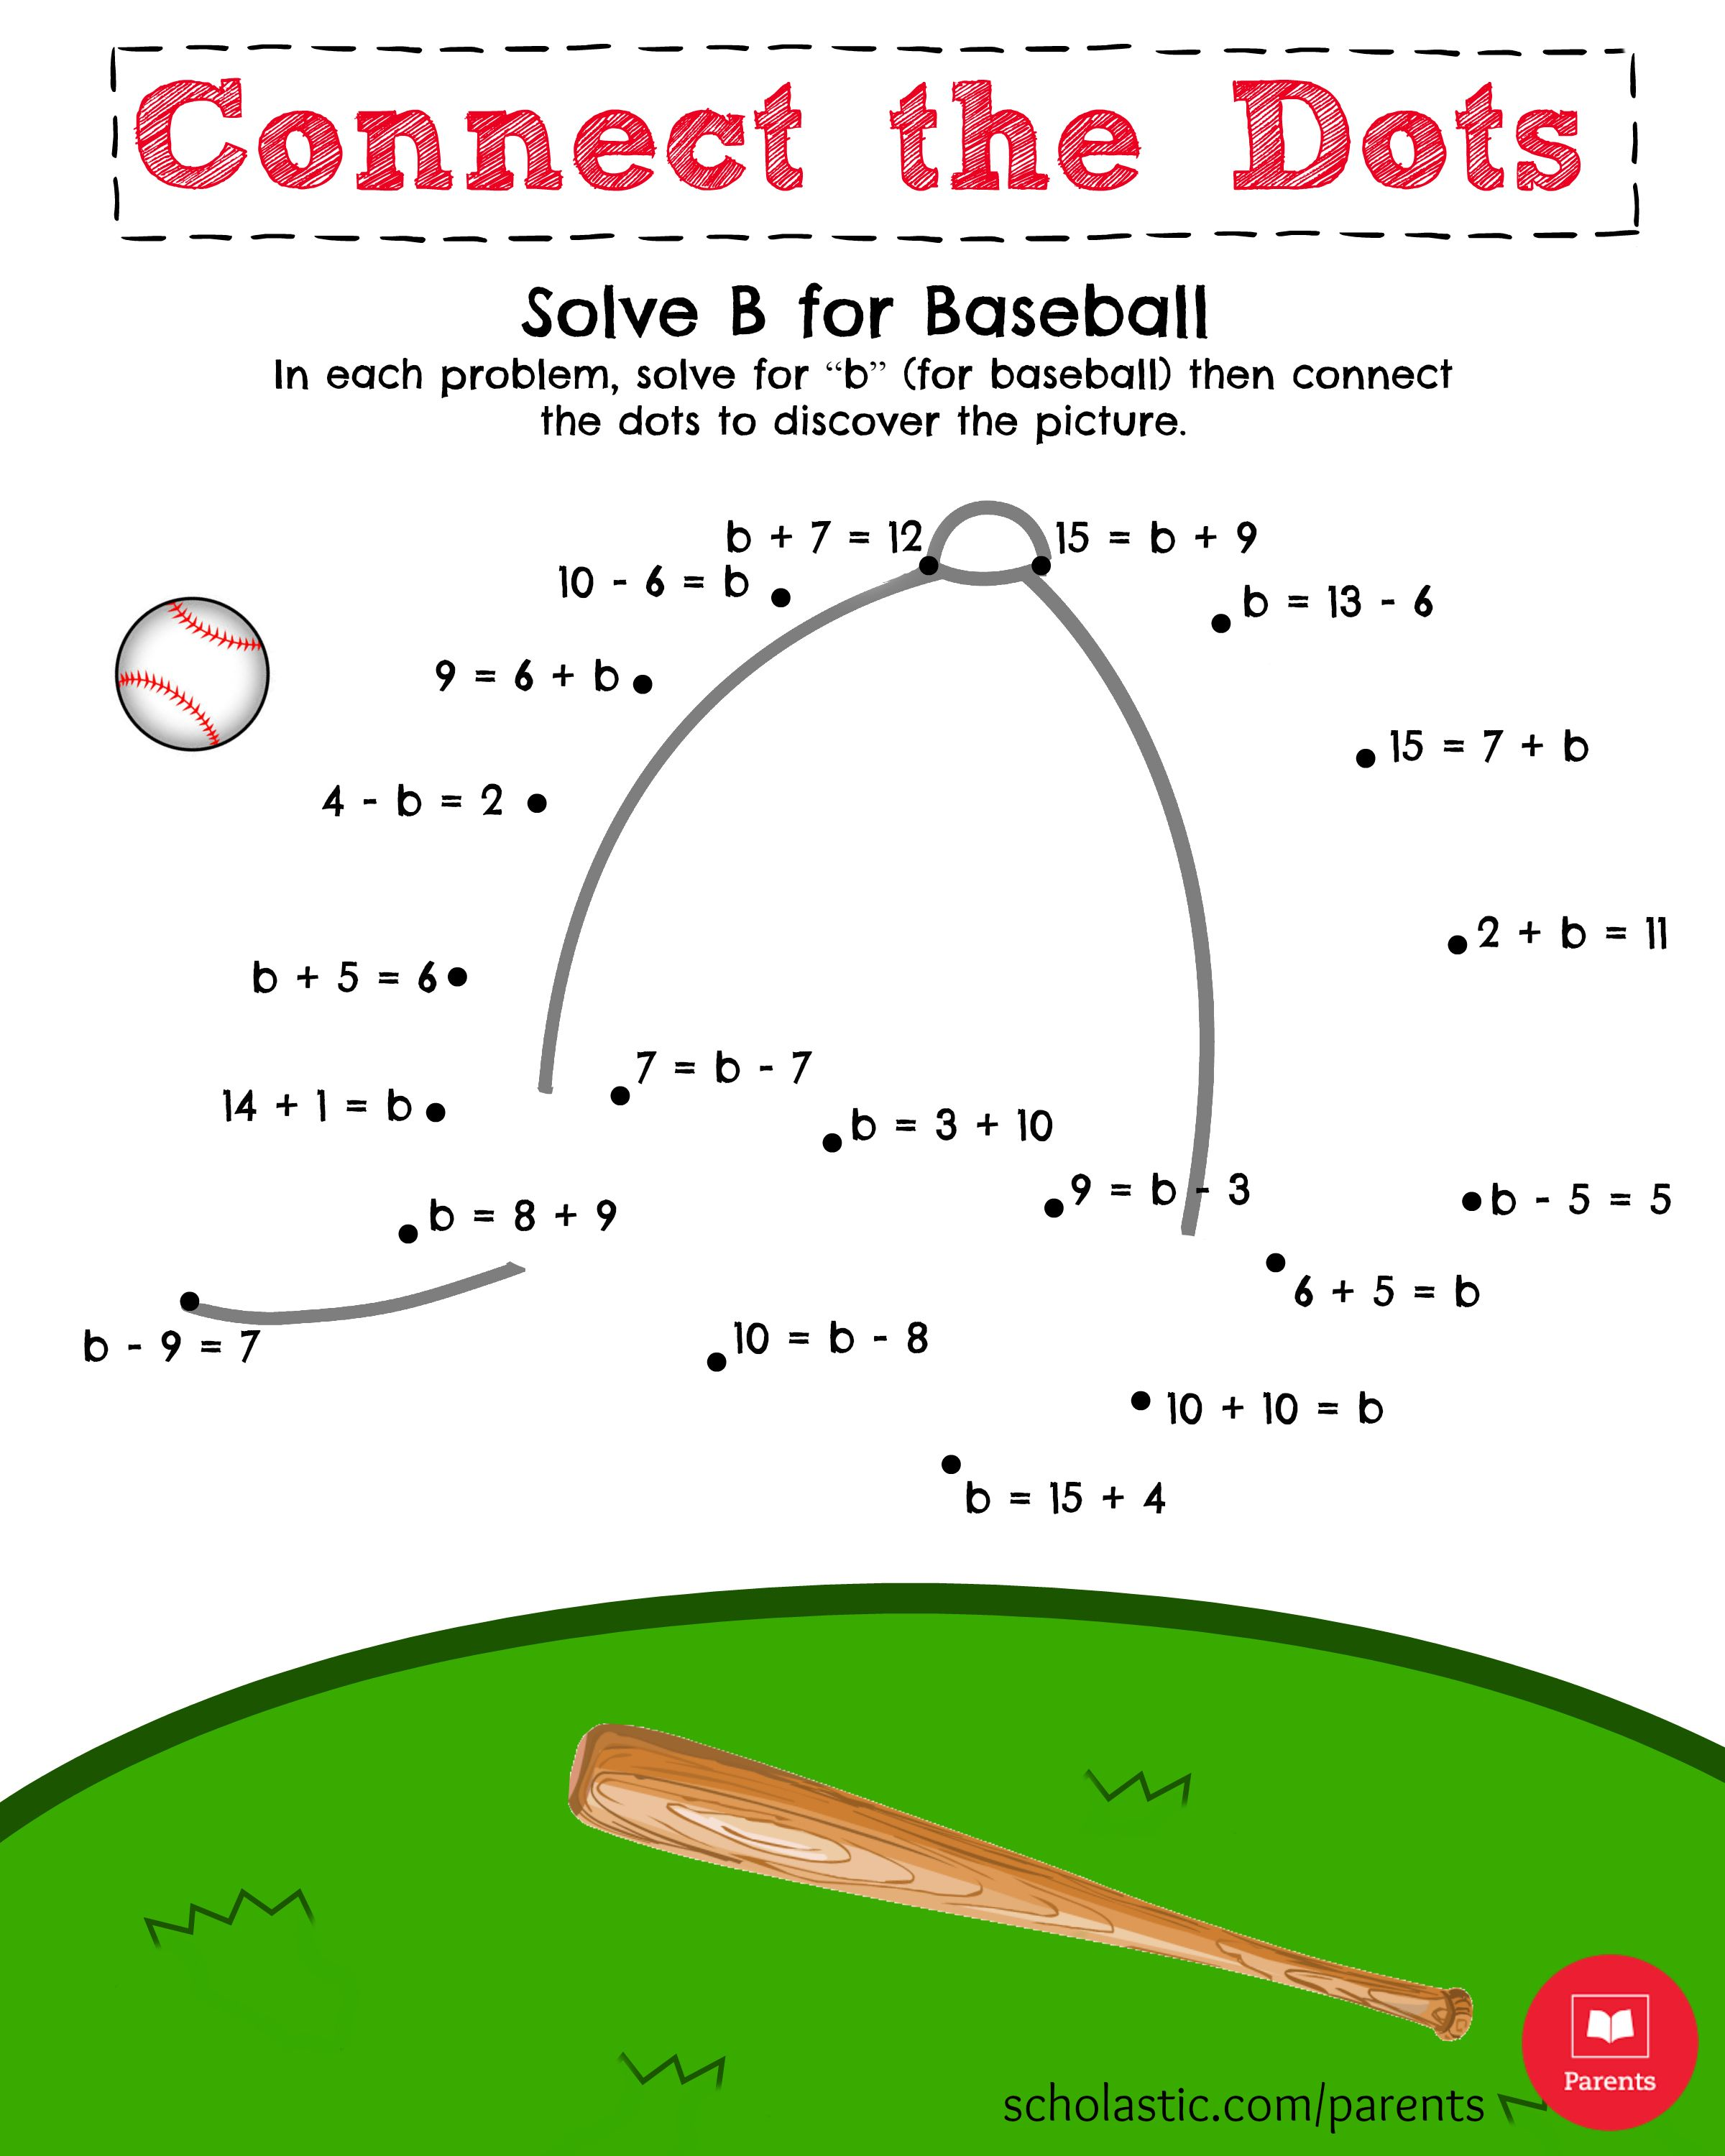 Solve B For Baseball Math Printable Math Printables Math Worksheets Education Math